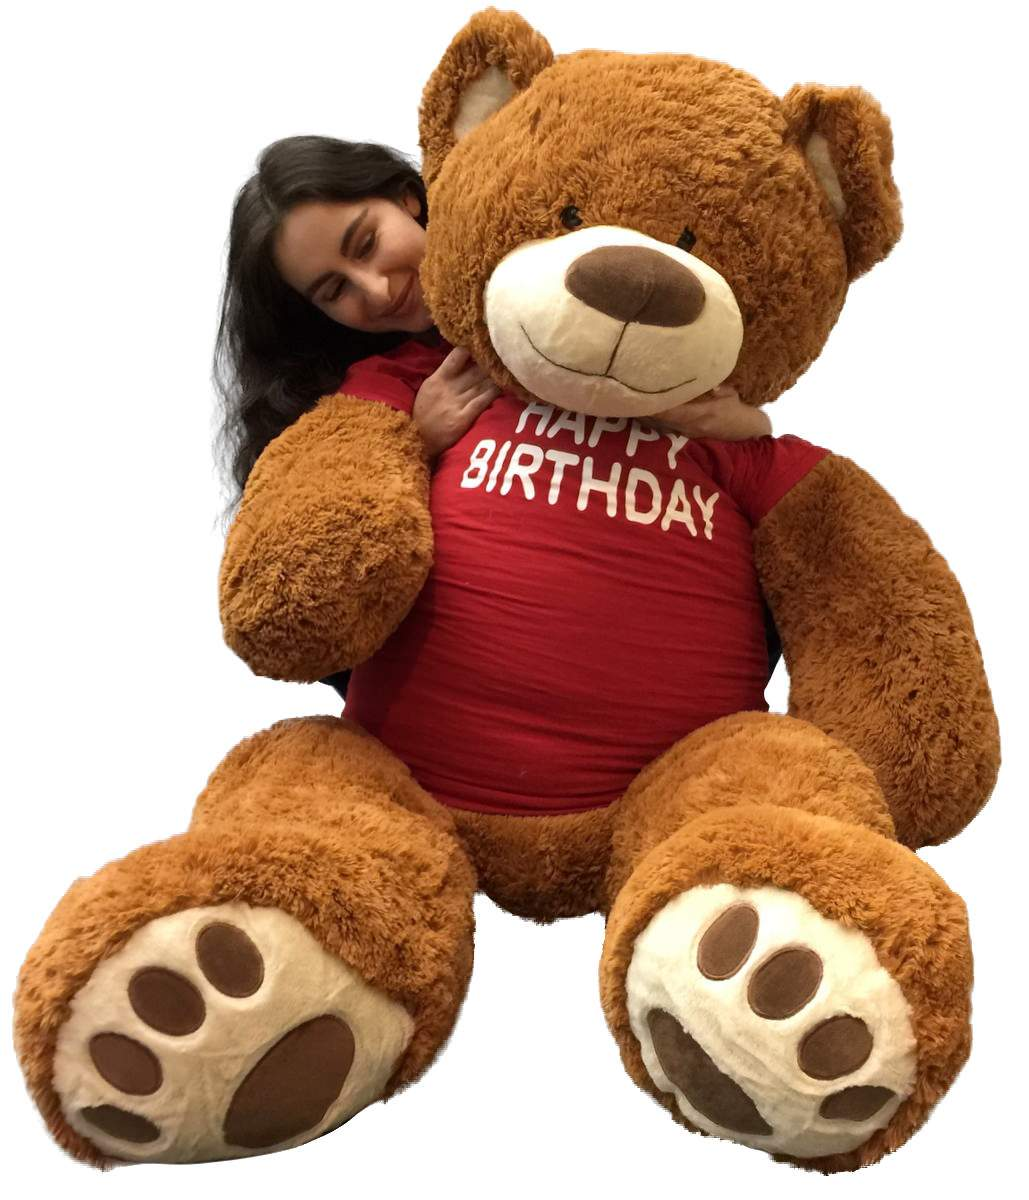 5 Foot Giant Teddy Bear 60 Inches Soft Cookie Dough Brown Color Wears HAPPY BIRTHDAY... by BigPlush